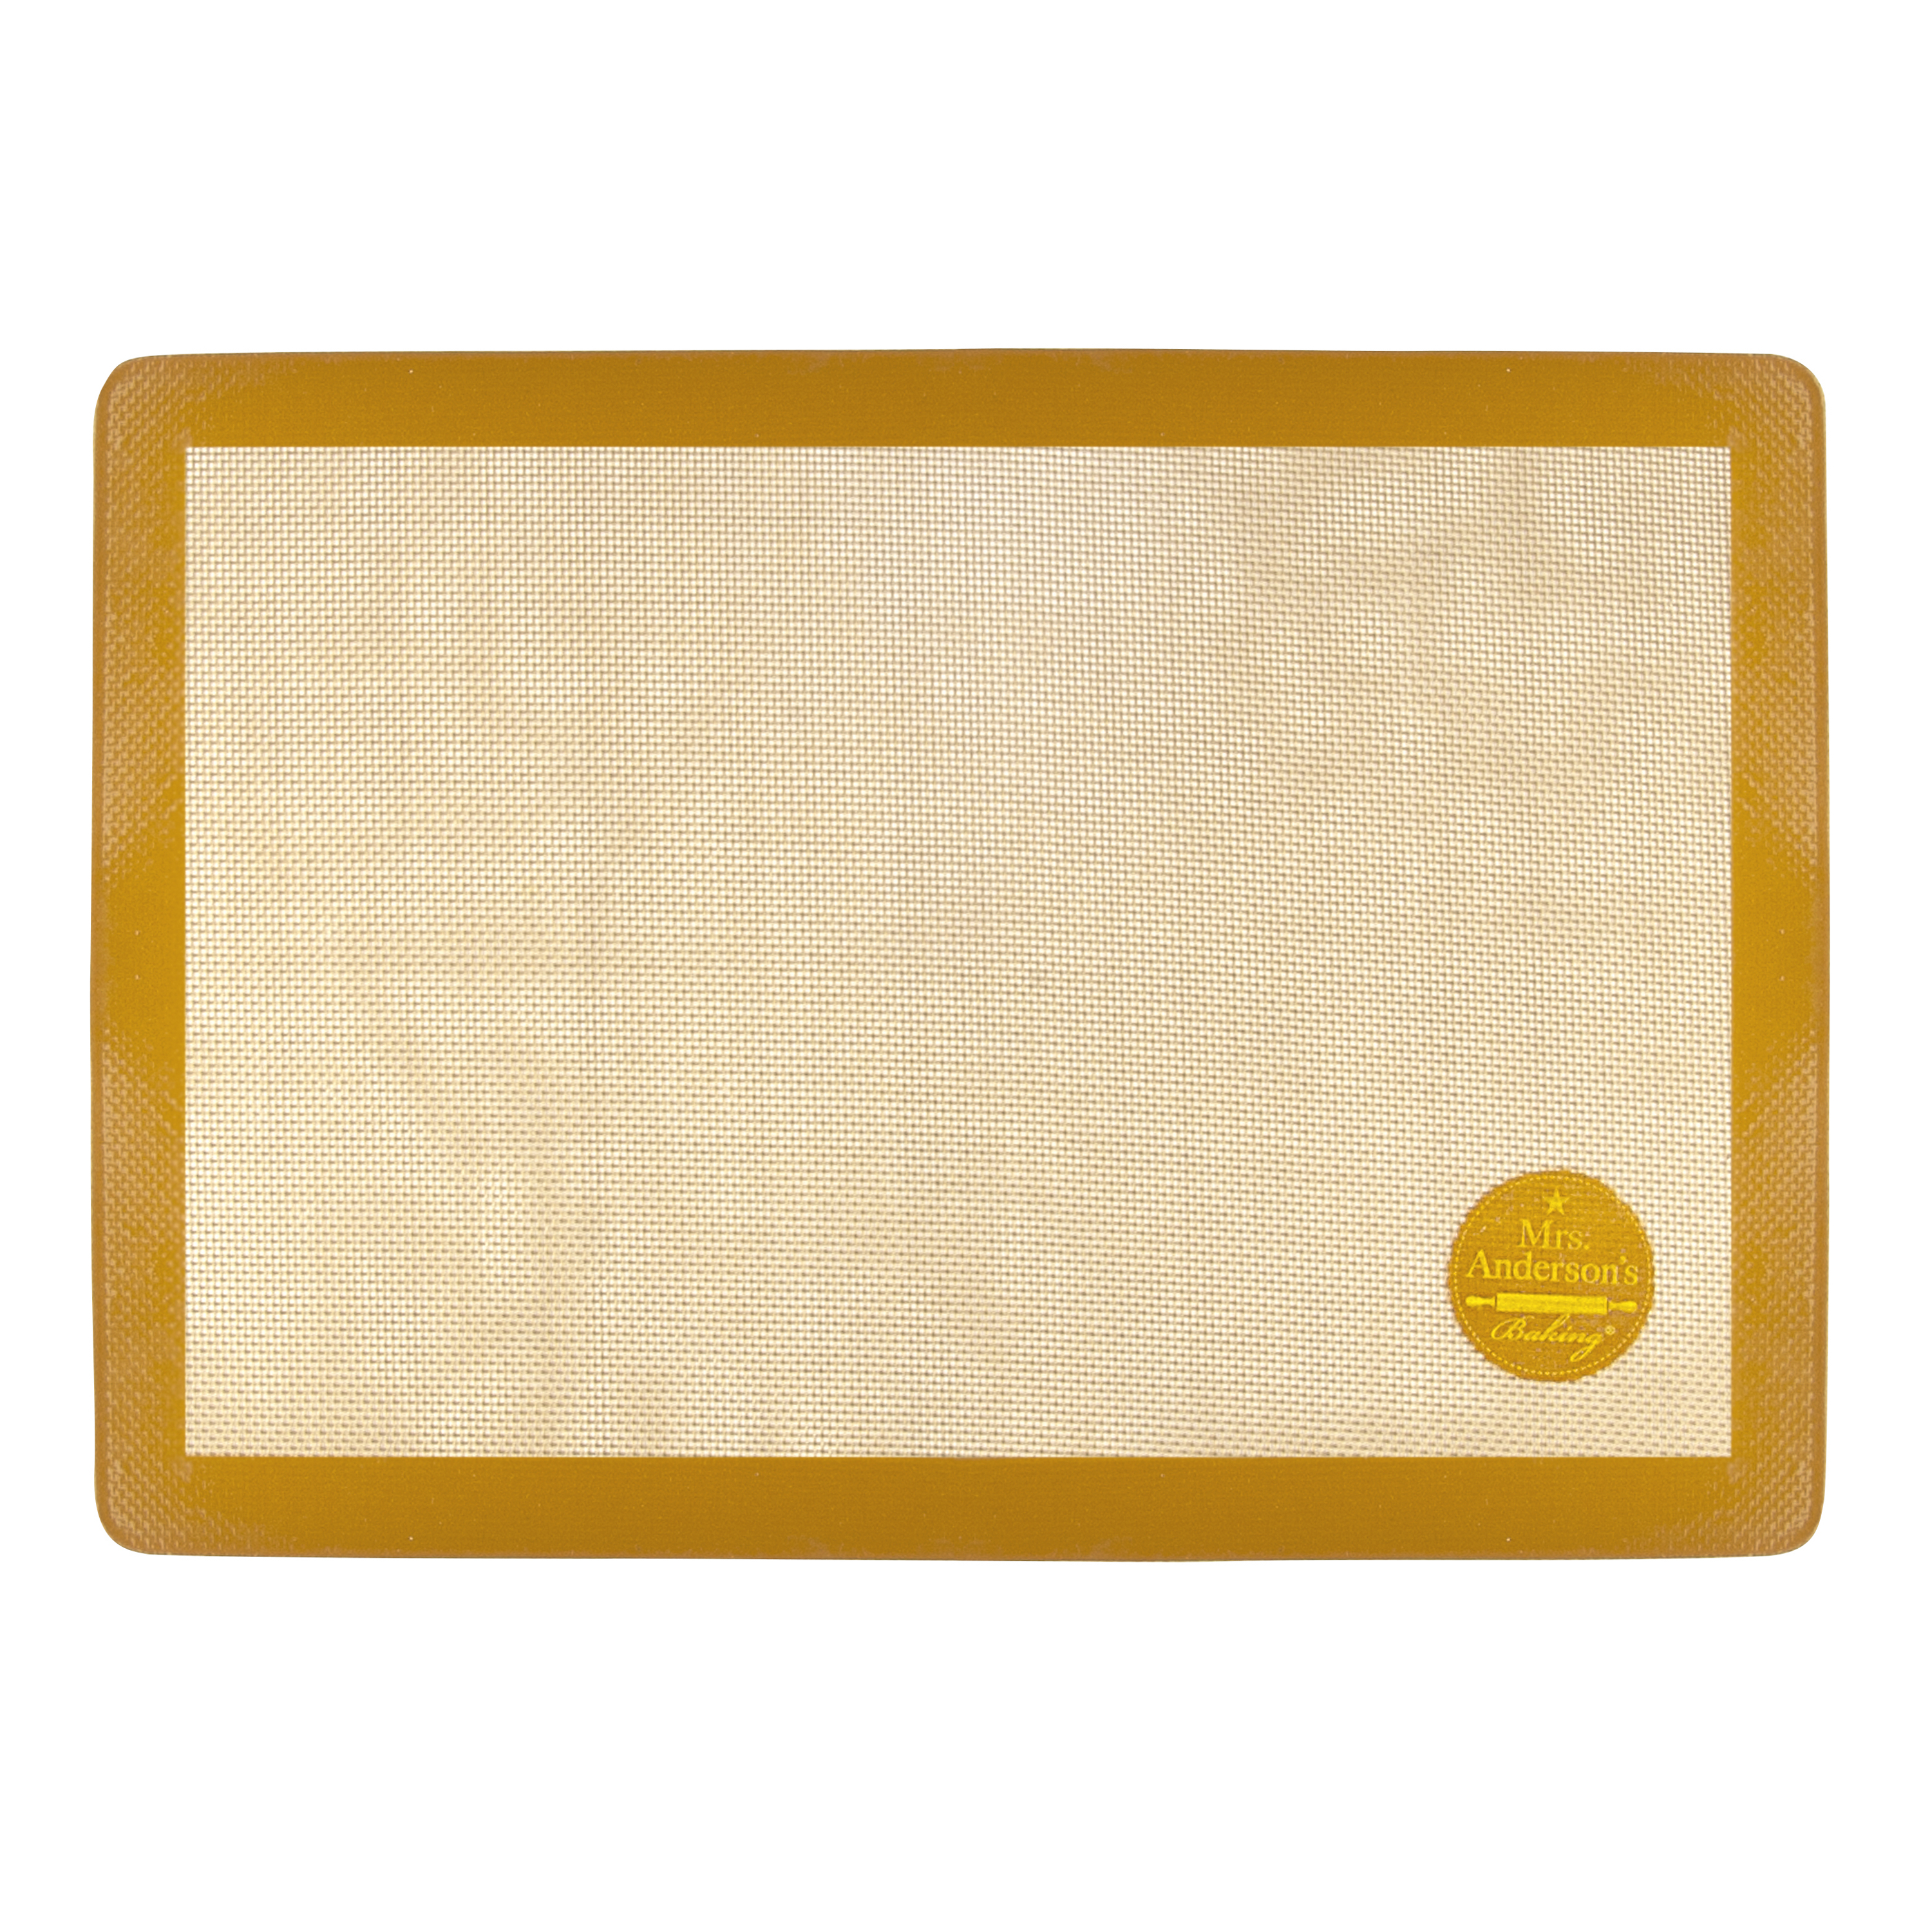 Mrs. Anderson's Silicone Non-Stick Full Size Baking Mat